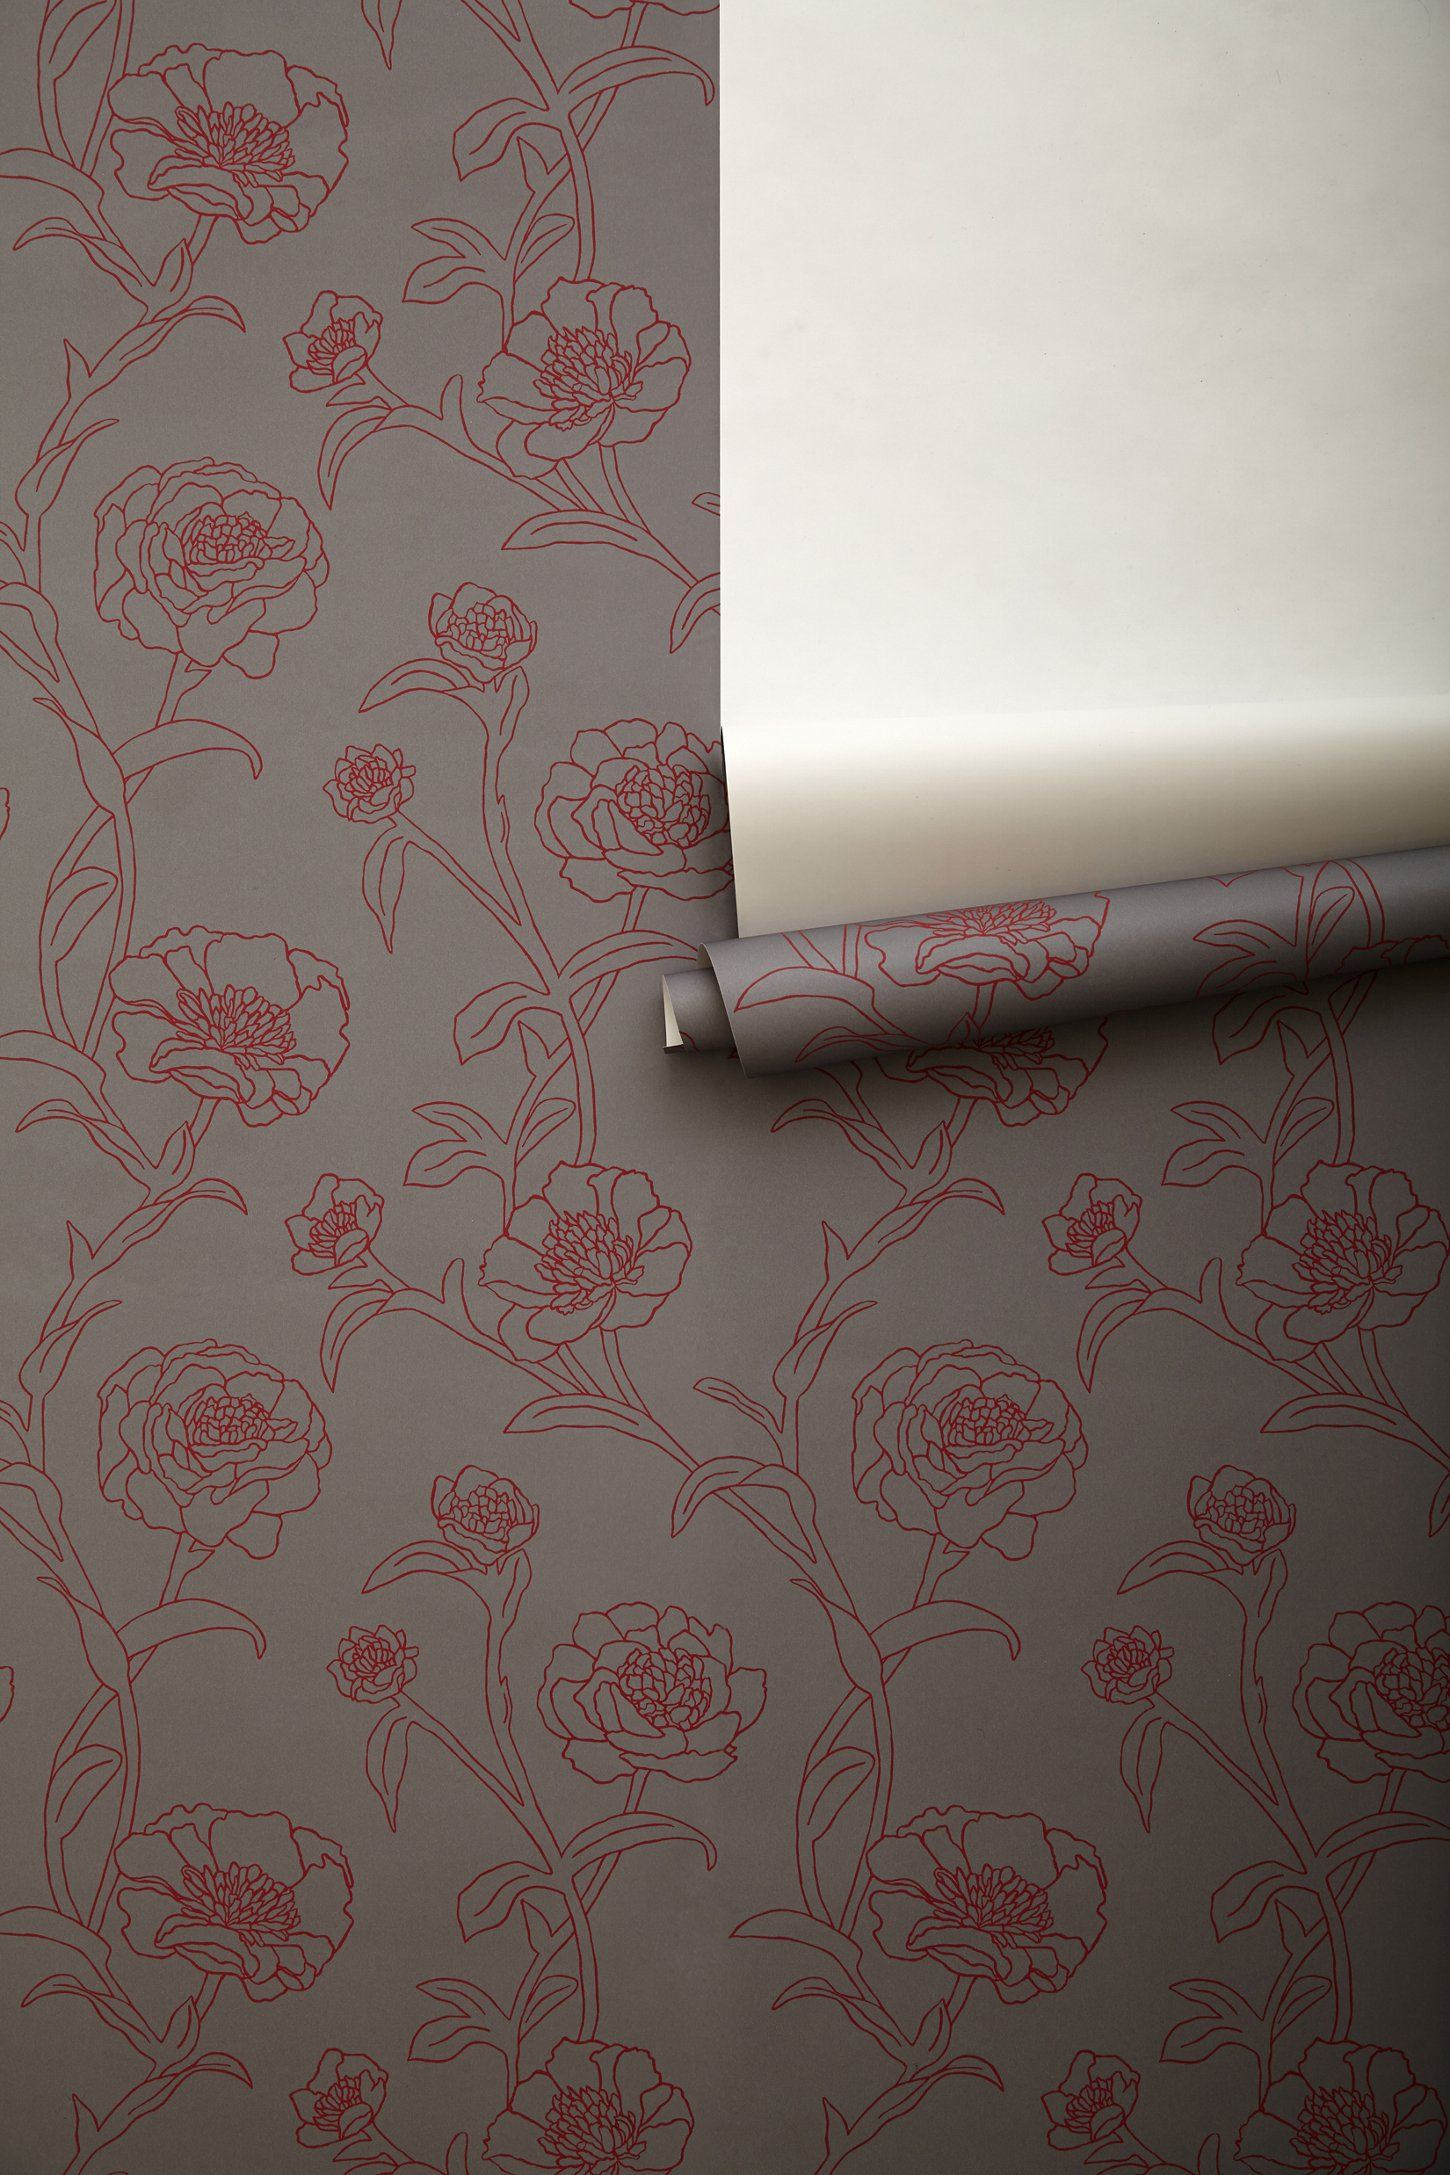 Surestrip Backing Allows For Paste Free Application And Easy Removal Digitally Printed Paper Rol Peony Wallpaper Eclectic Wallpaper Grey Floral Wallpaper